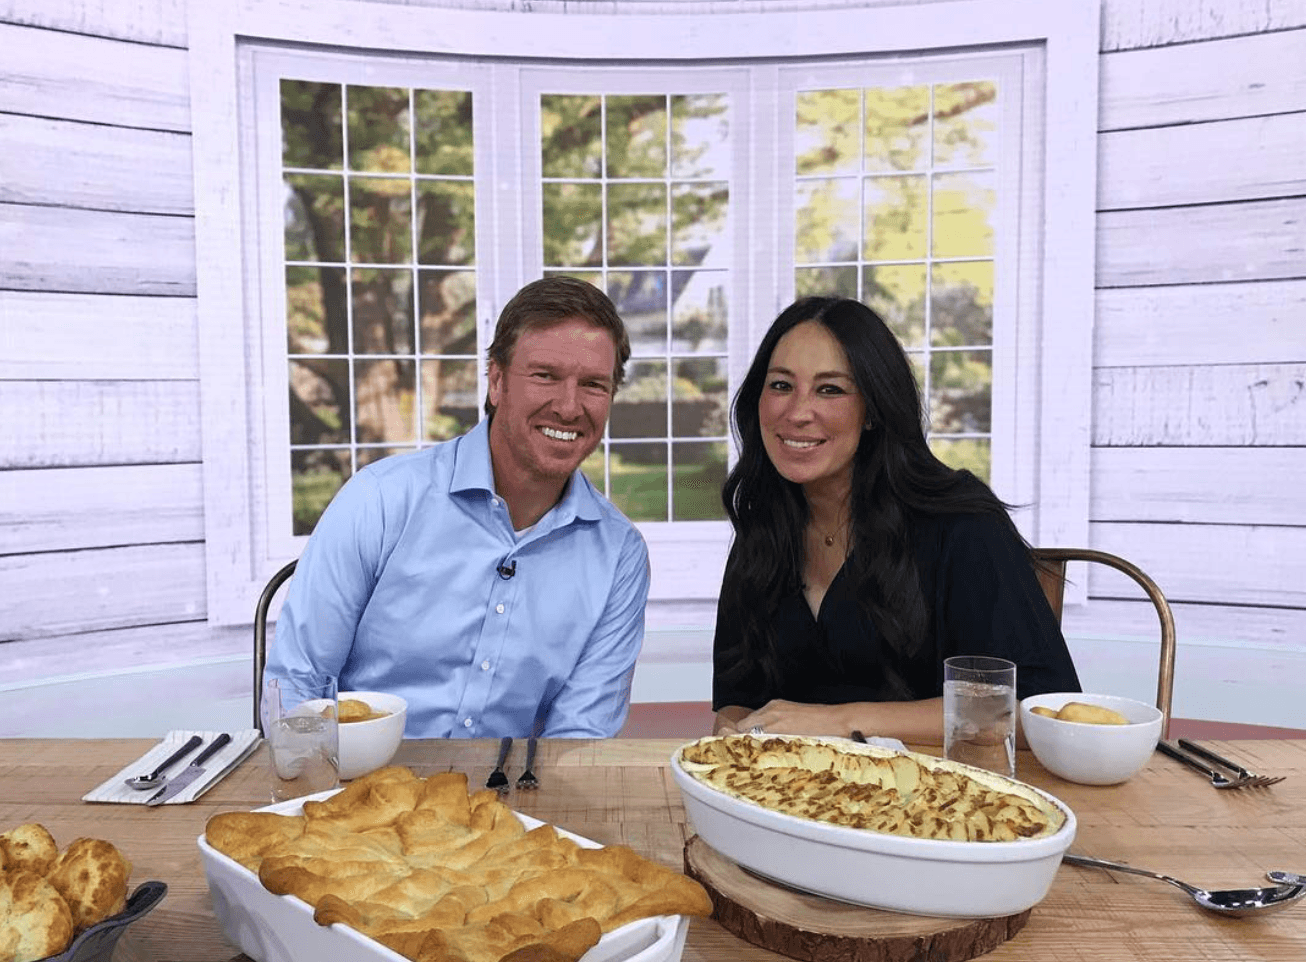 chip and joanna gaines net worth and how much they were paid for fixer upper. Black Bedroom Furniture Sets. Home Design Ideas